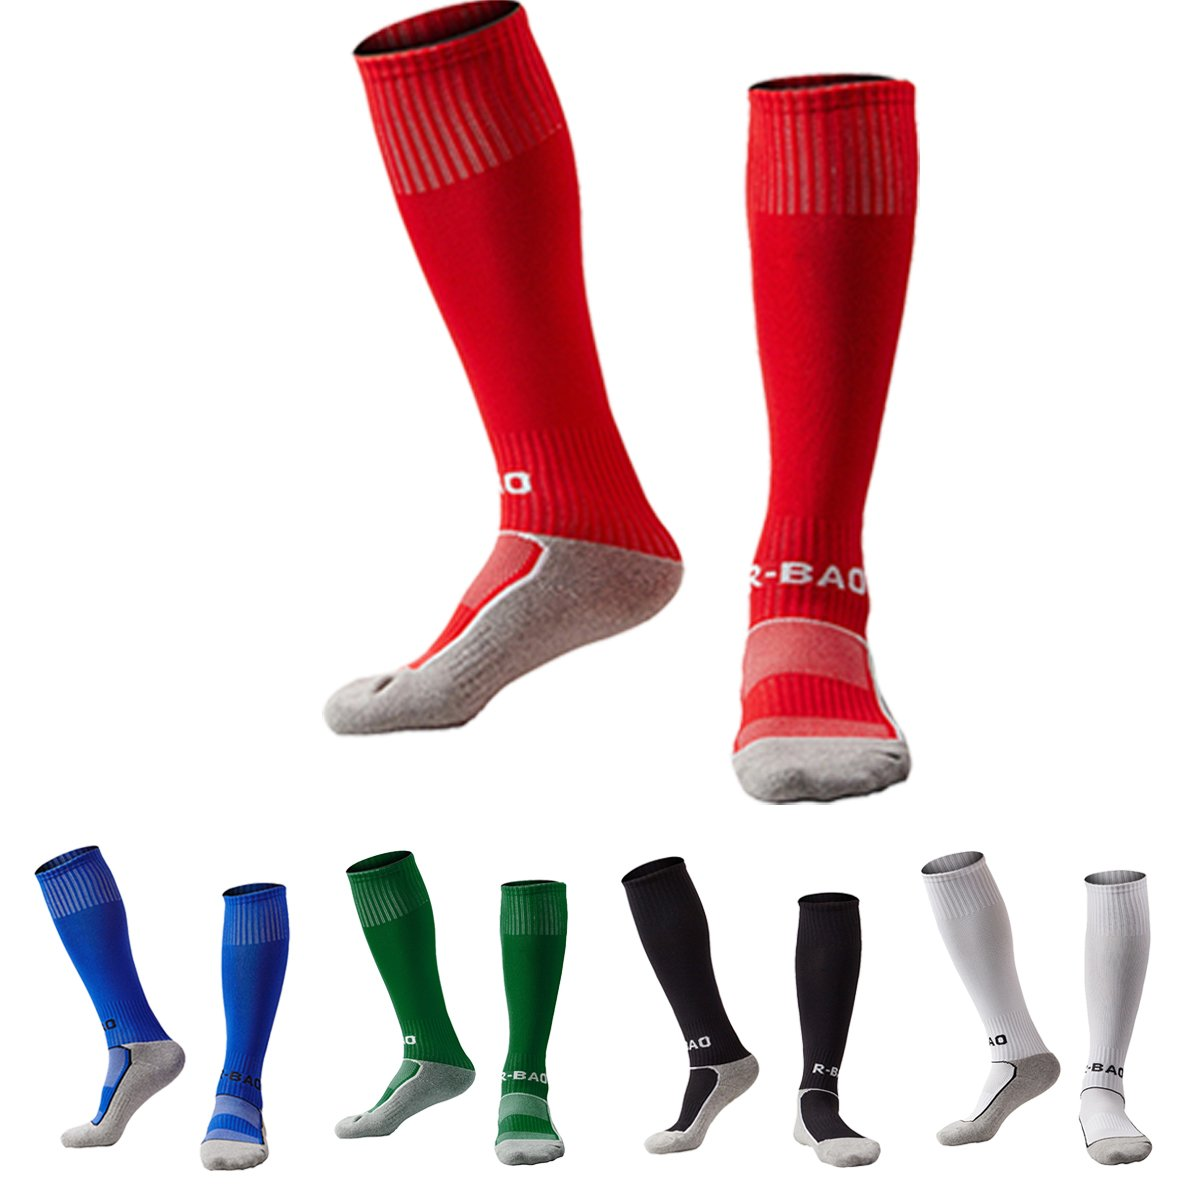 Football Socks for Toddlers Knee High Towel Bottom Pressure Soccer Socks 5 Pack Red XS by KALAKIDS